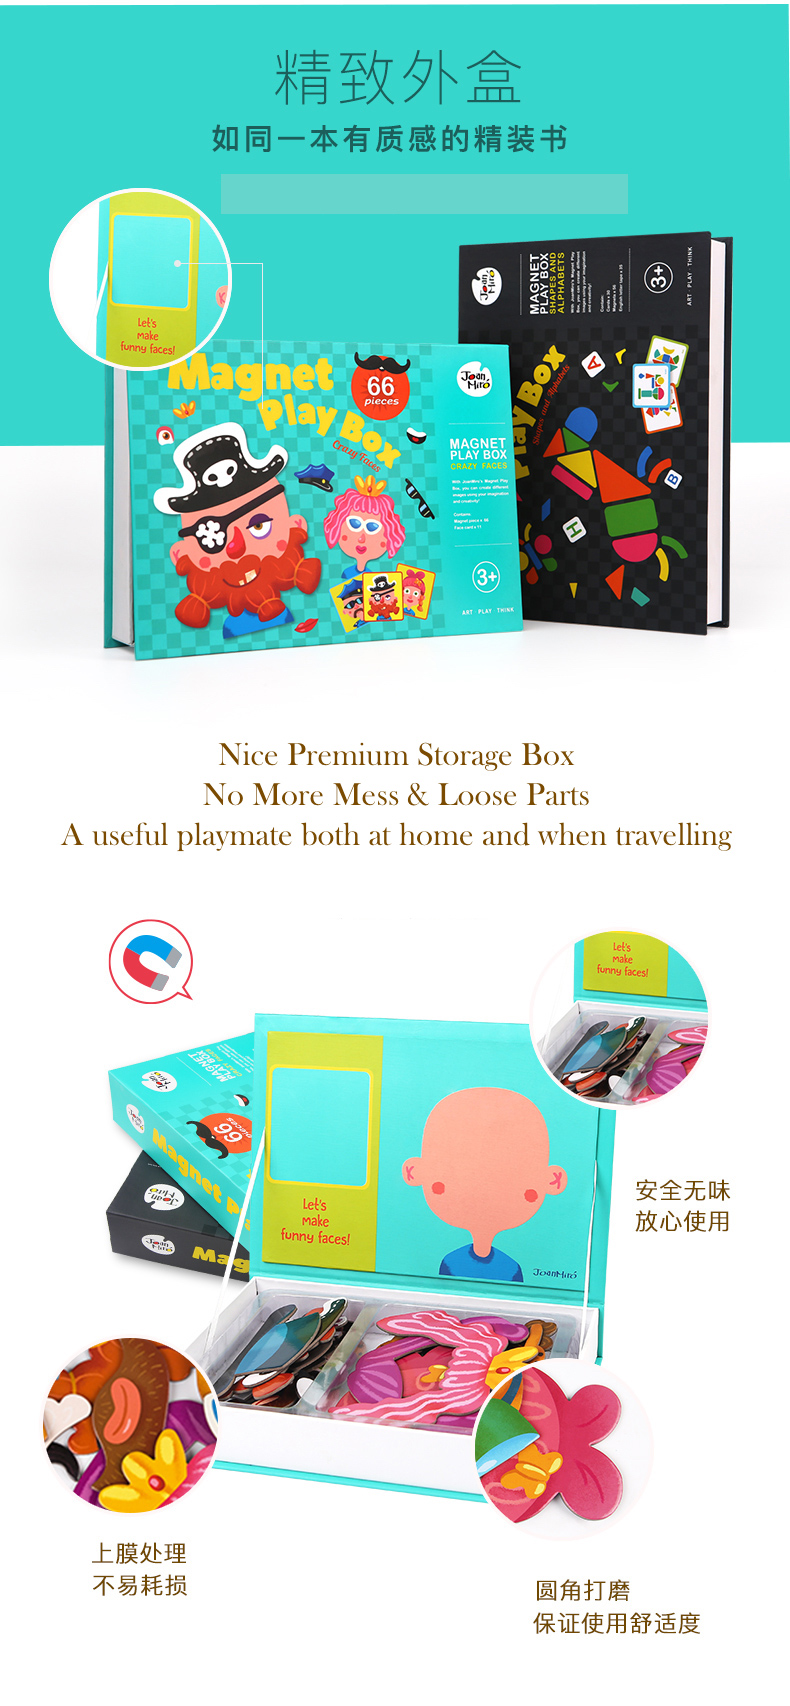 joan miro jar melo magnet toys puzzle travelling toy 儿童磁贴拼图